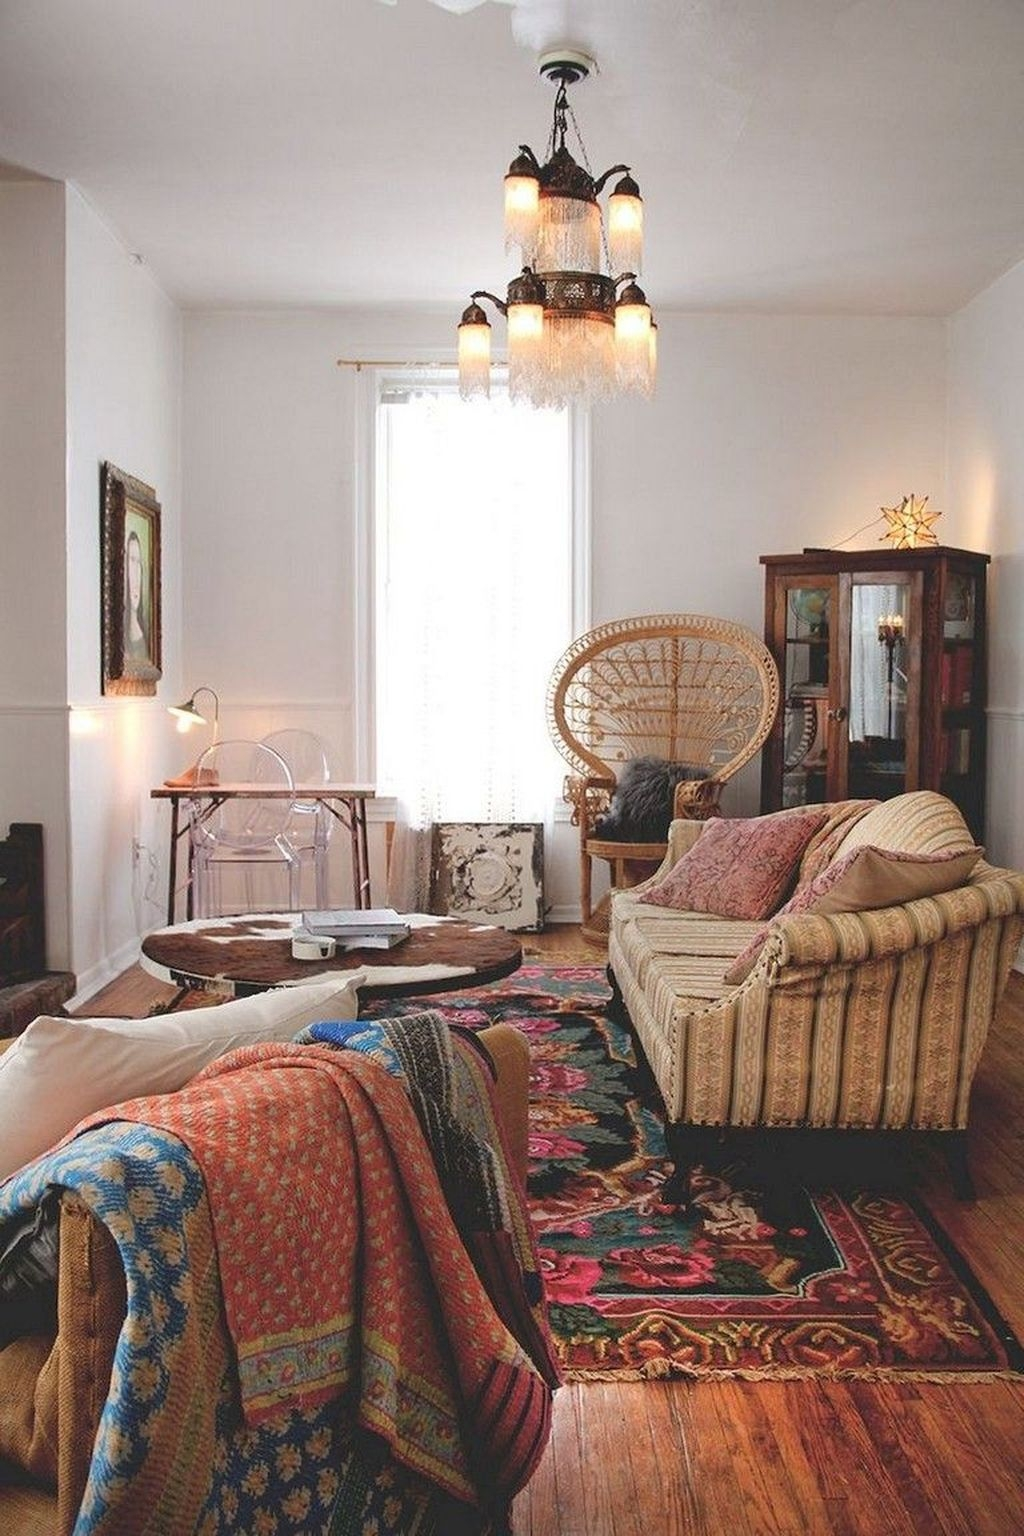 The Best Bohemian Farmhouse Decorating Ideas For Your Living Room 24